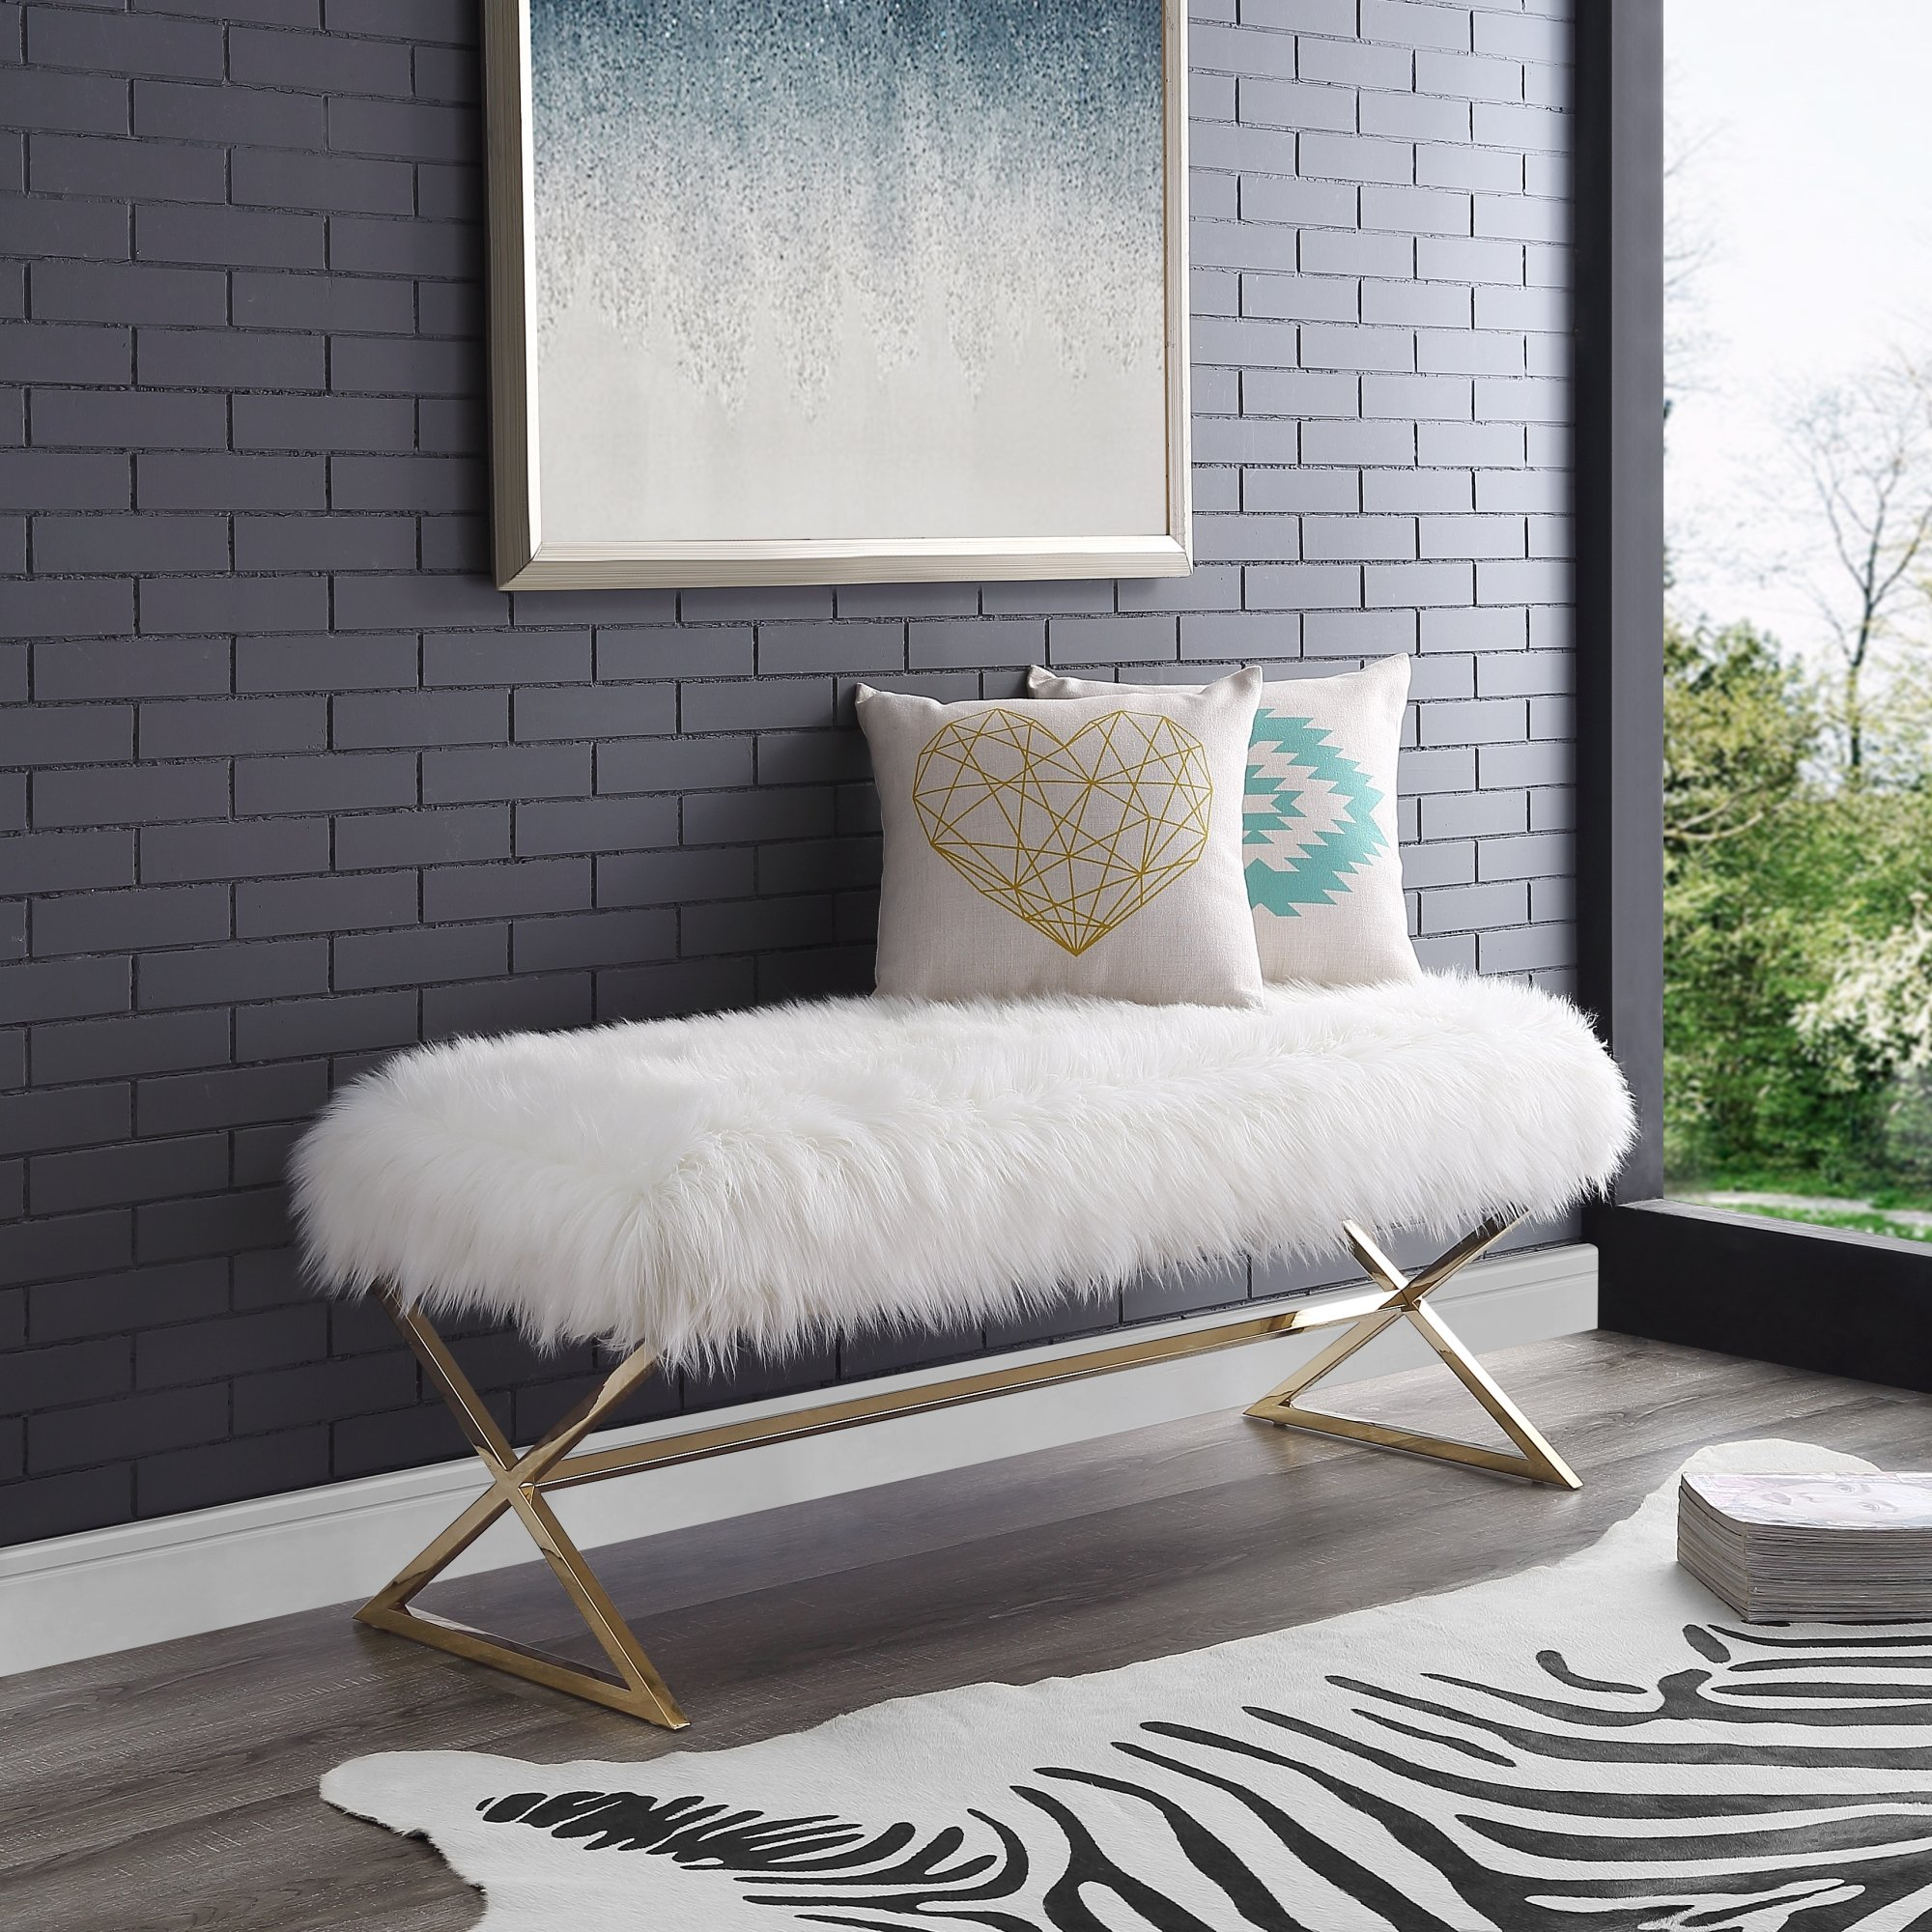 Aurora White Fur Upholstered Bench - Stainless Steel Legs   Gold Tone   Living-room, Entryway, Bedroom   Inspired Home